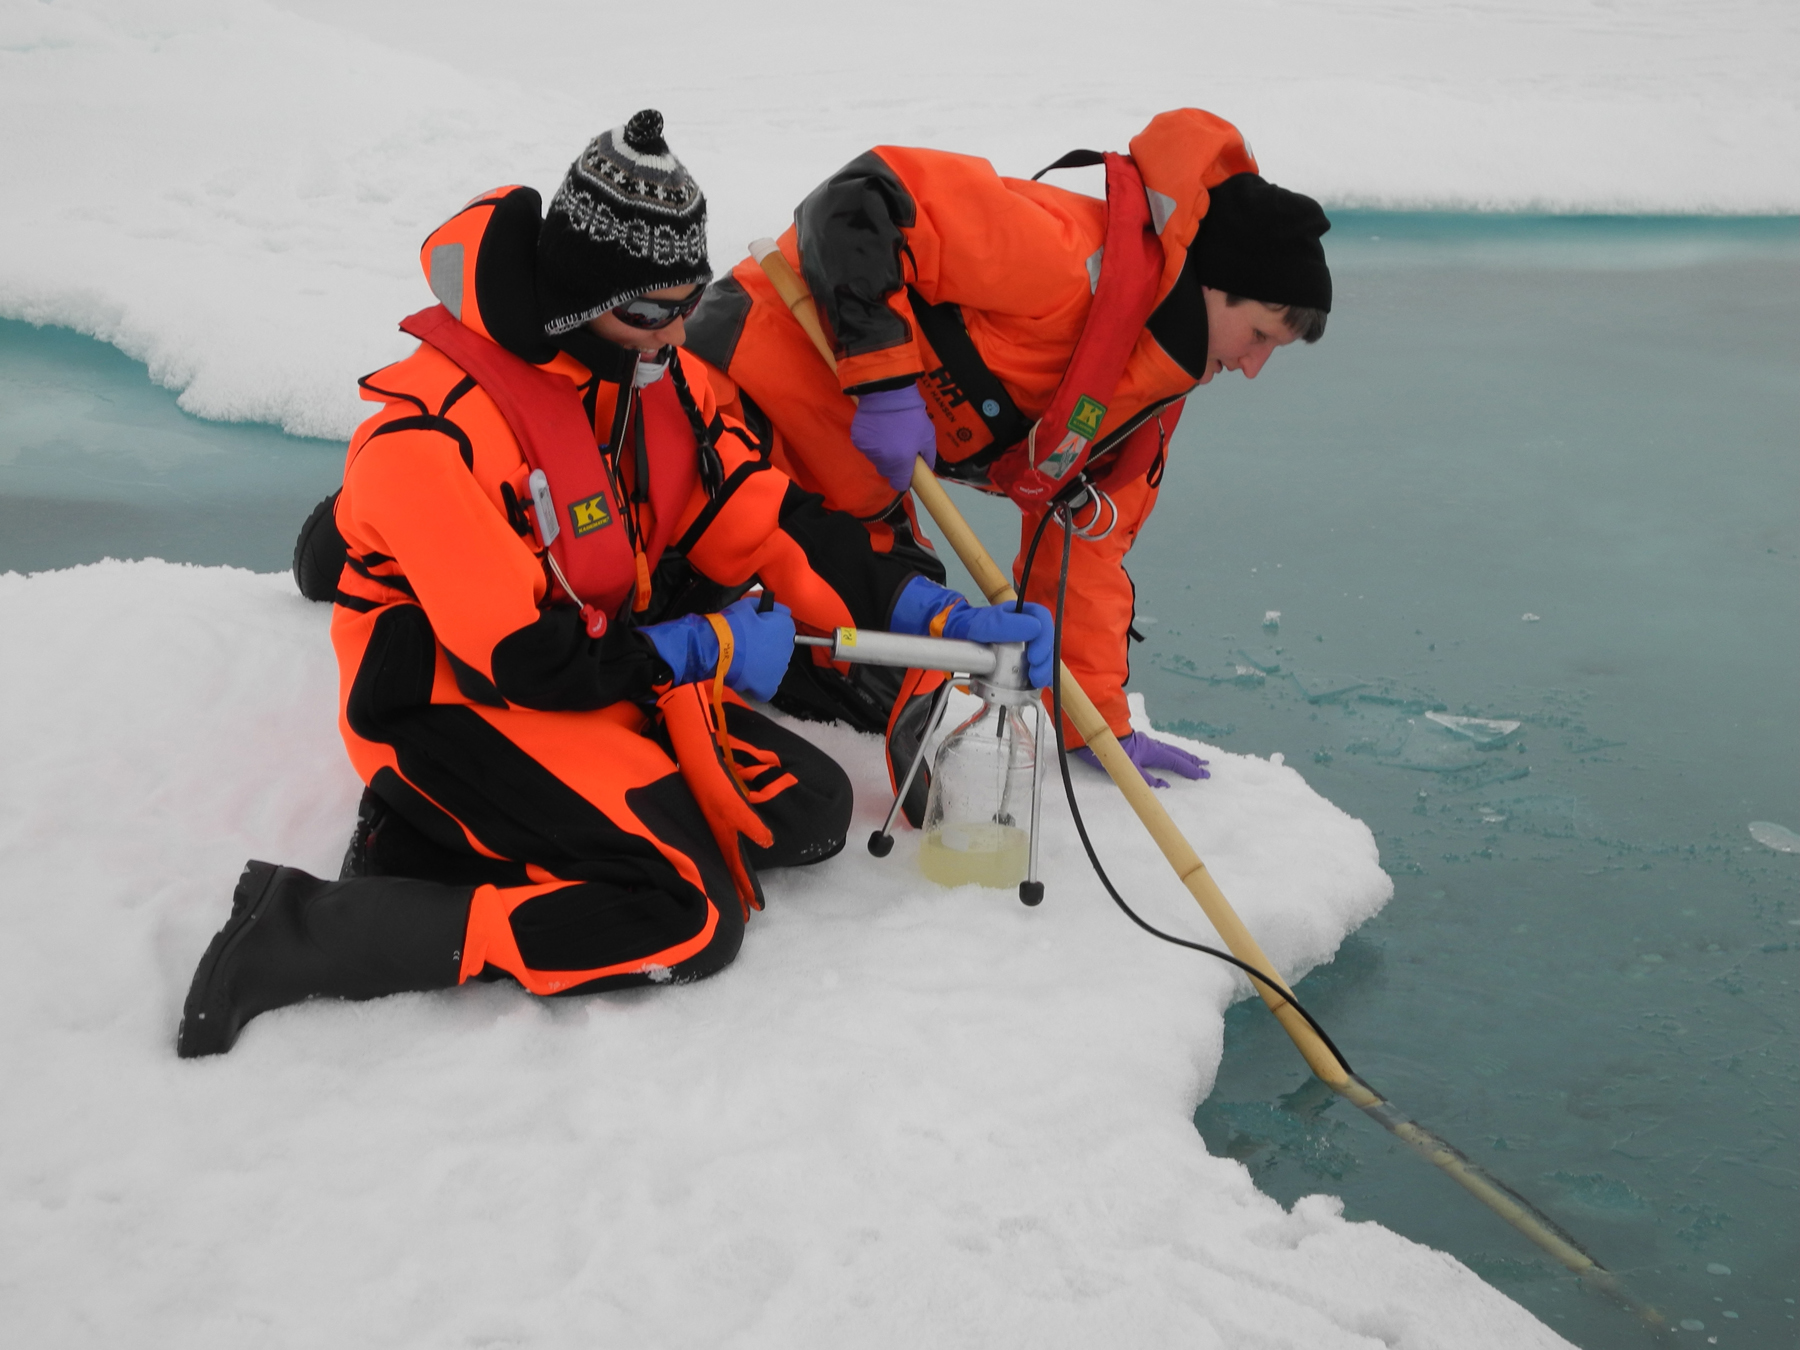 Polarstern researchers take water samples from the melting pools, the ice itself and the water beneath. They analyse all the samples for plants, animals and microorganisms. On this expedition, the researchers discovered a surprising amount of algae in the pools on the sea ice. The long-lived algae provide information to scientists on recent changes to the sea ice cover. Photo: Christiane Uhlig, AWI